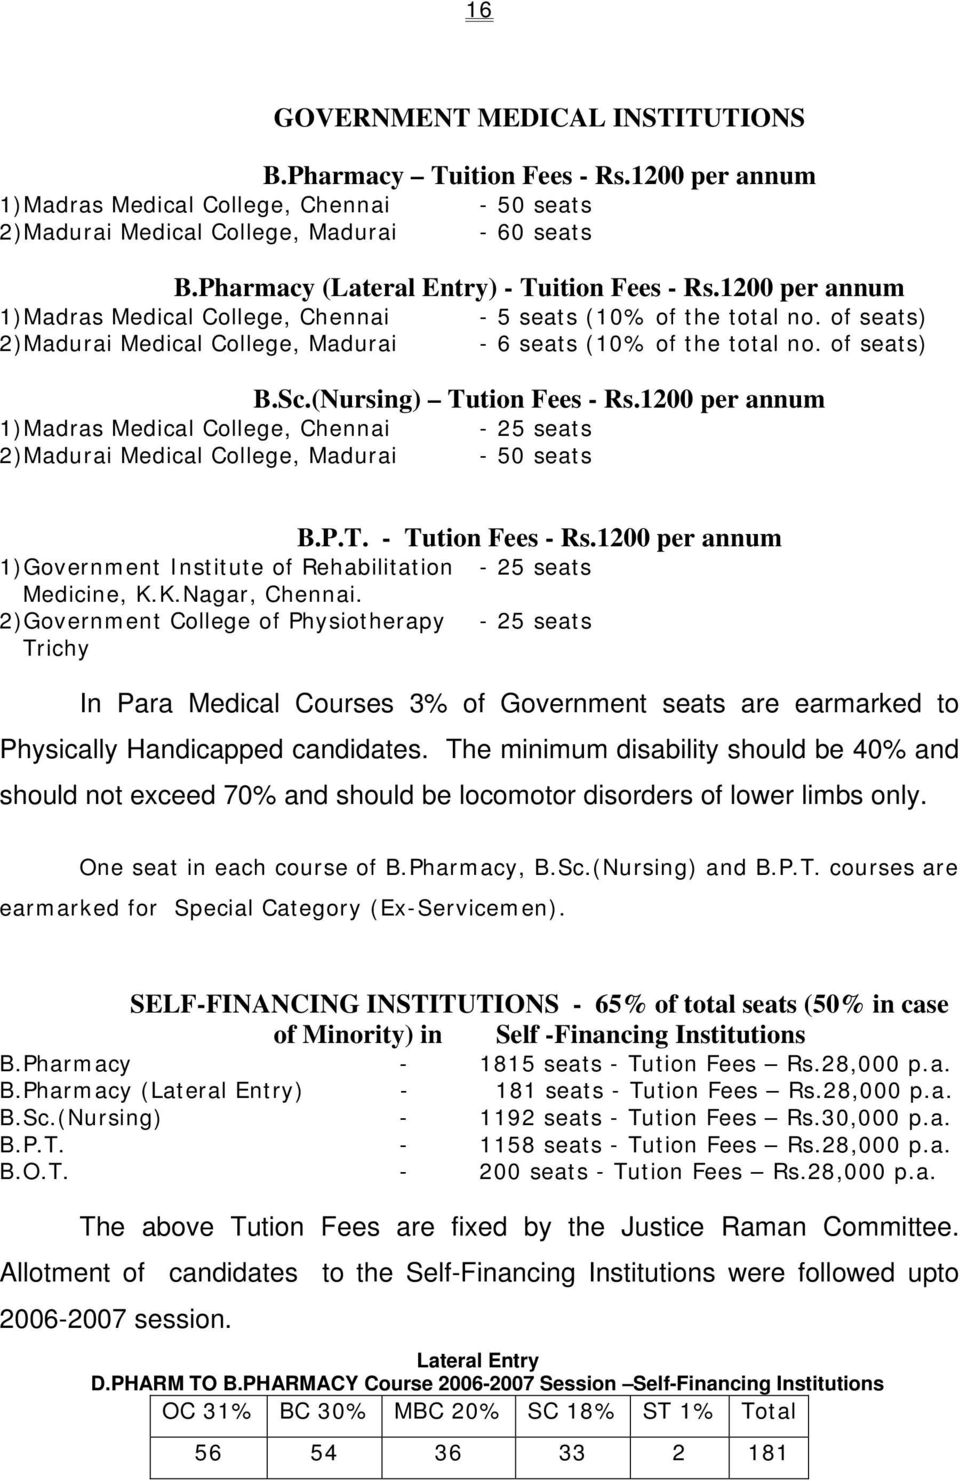 of seats) 2)Madurai Medical College, Madurai - 6 seats (10% of the total no. of seats) B.Sc.(Nursing) Tution Fees - Rs.